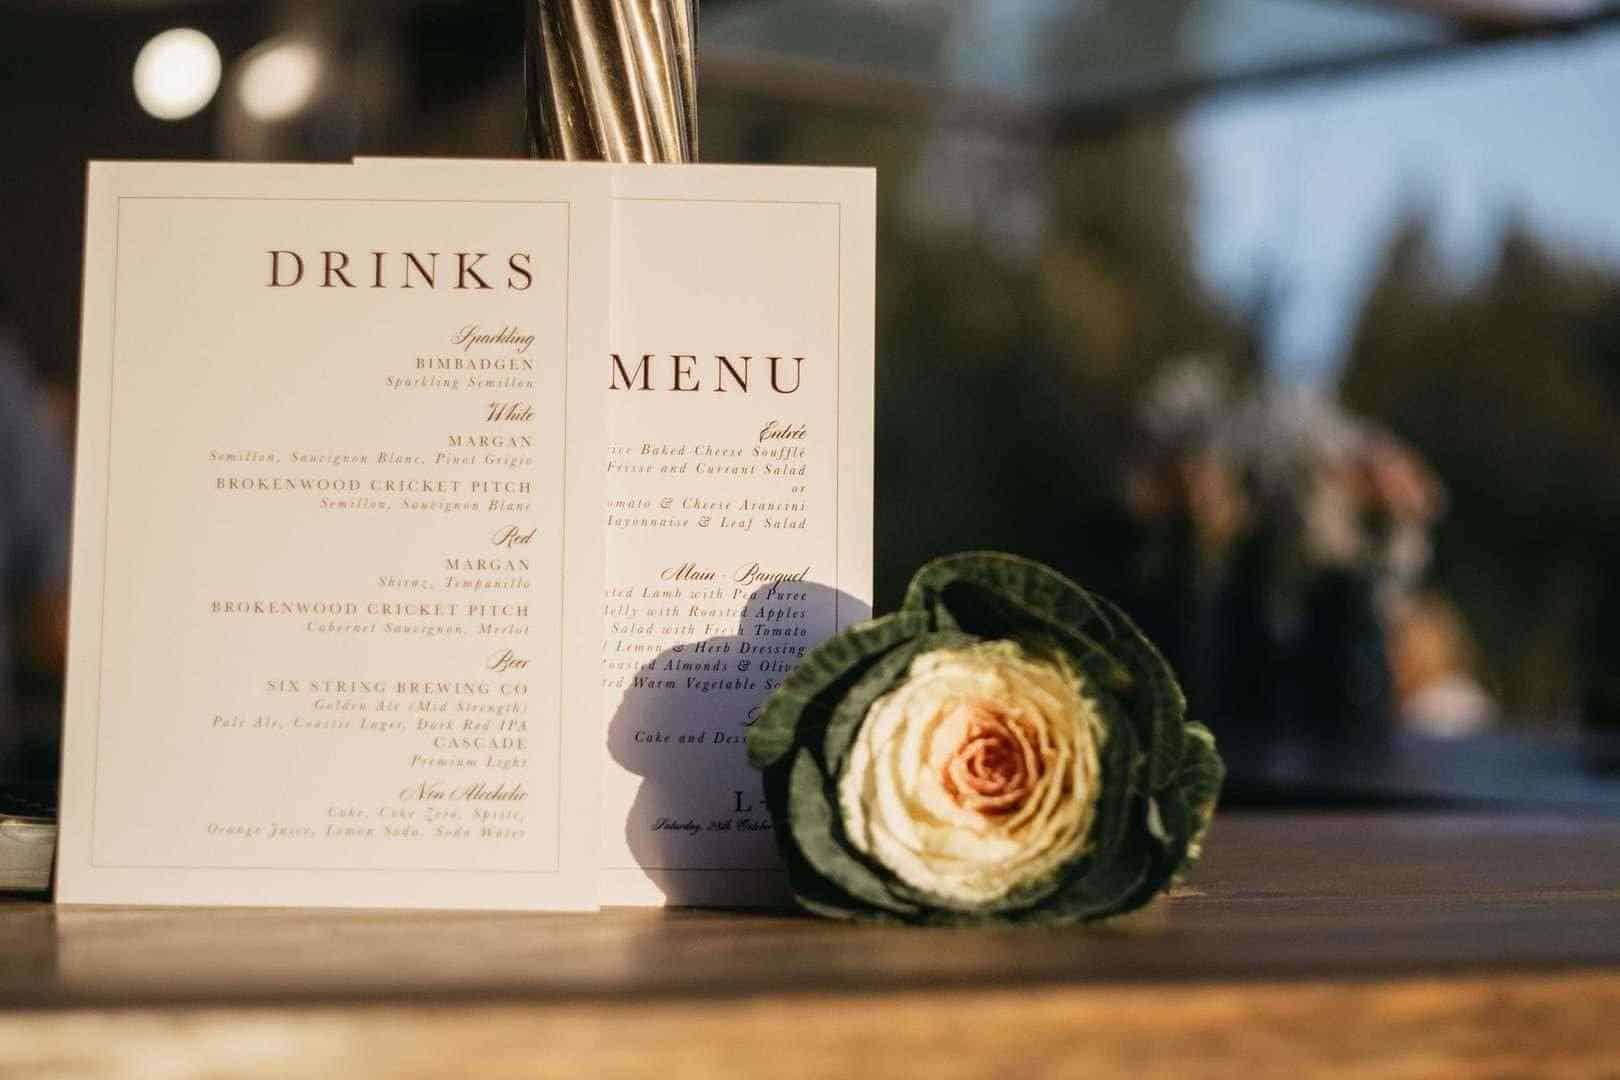 Drinks and menu